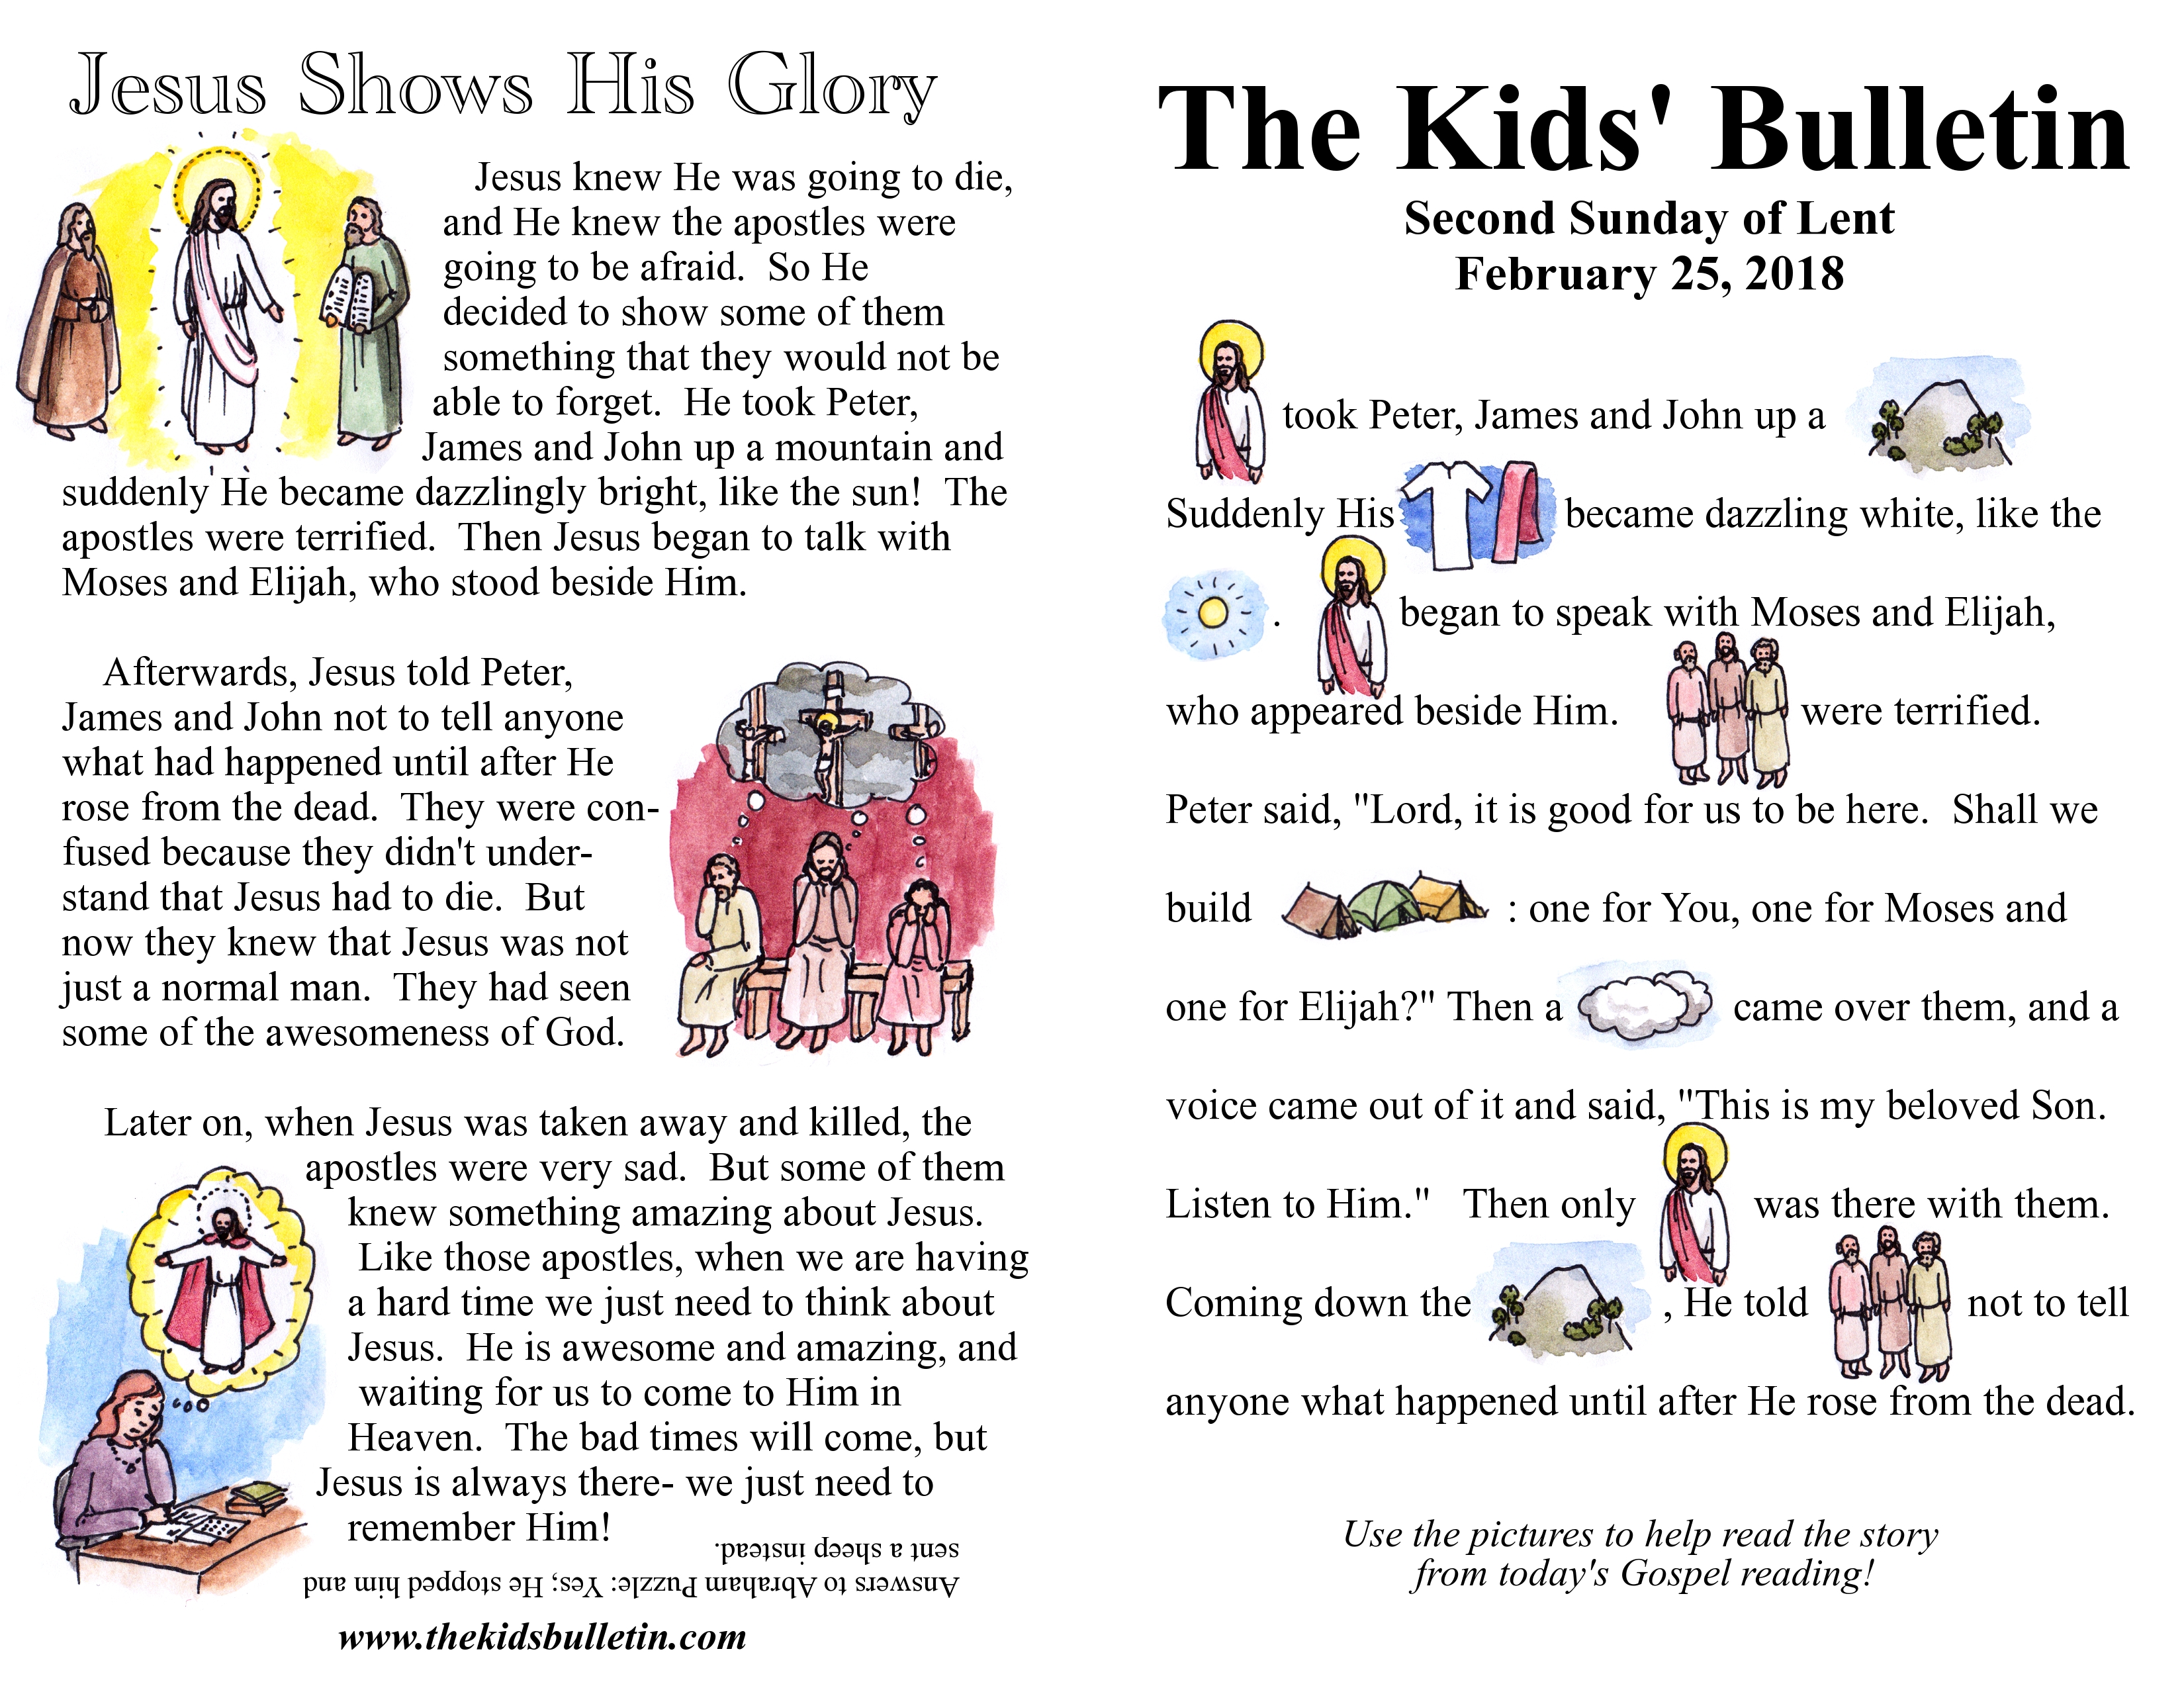 The Kids' Bulletin for Sunday February 25th, 2018 | The ...